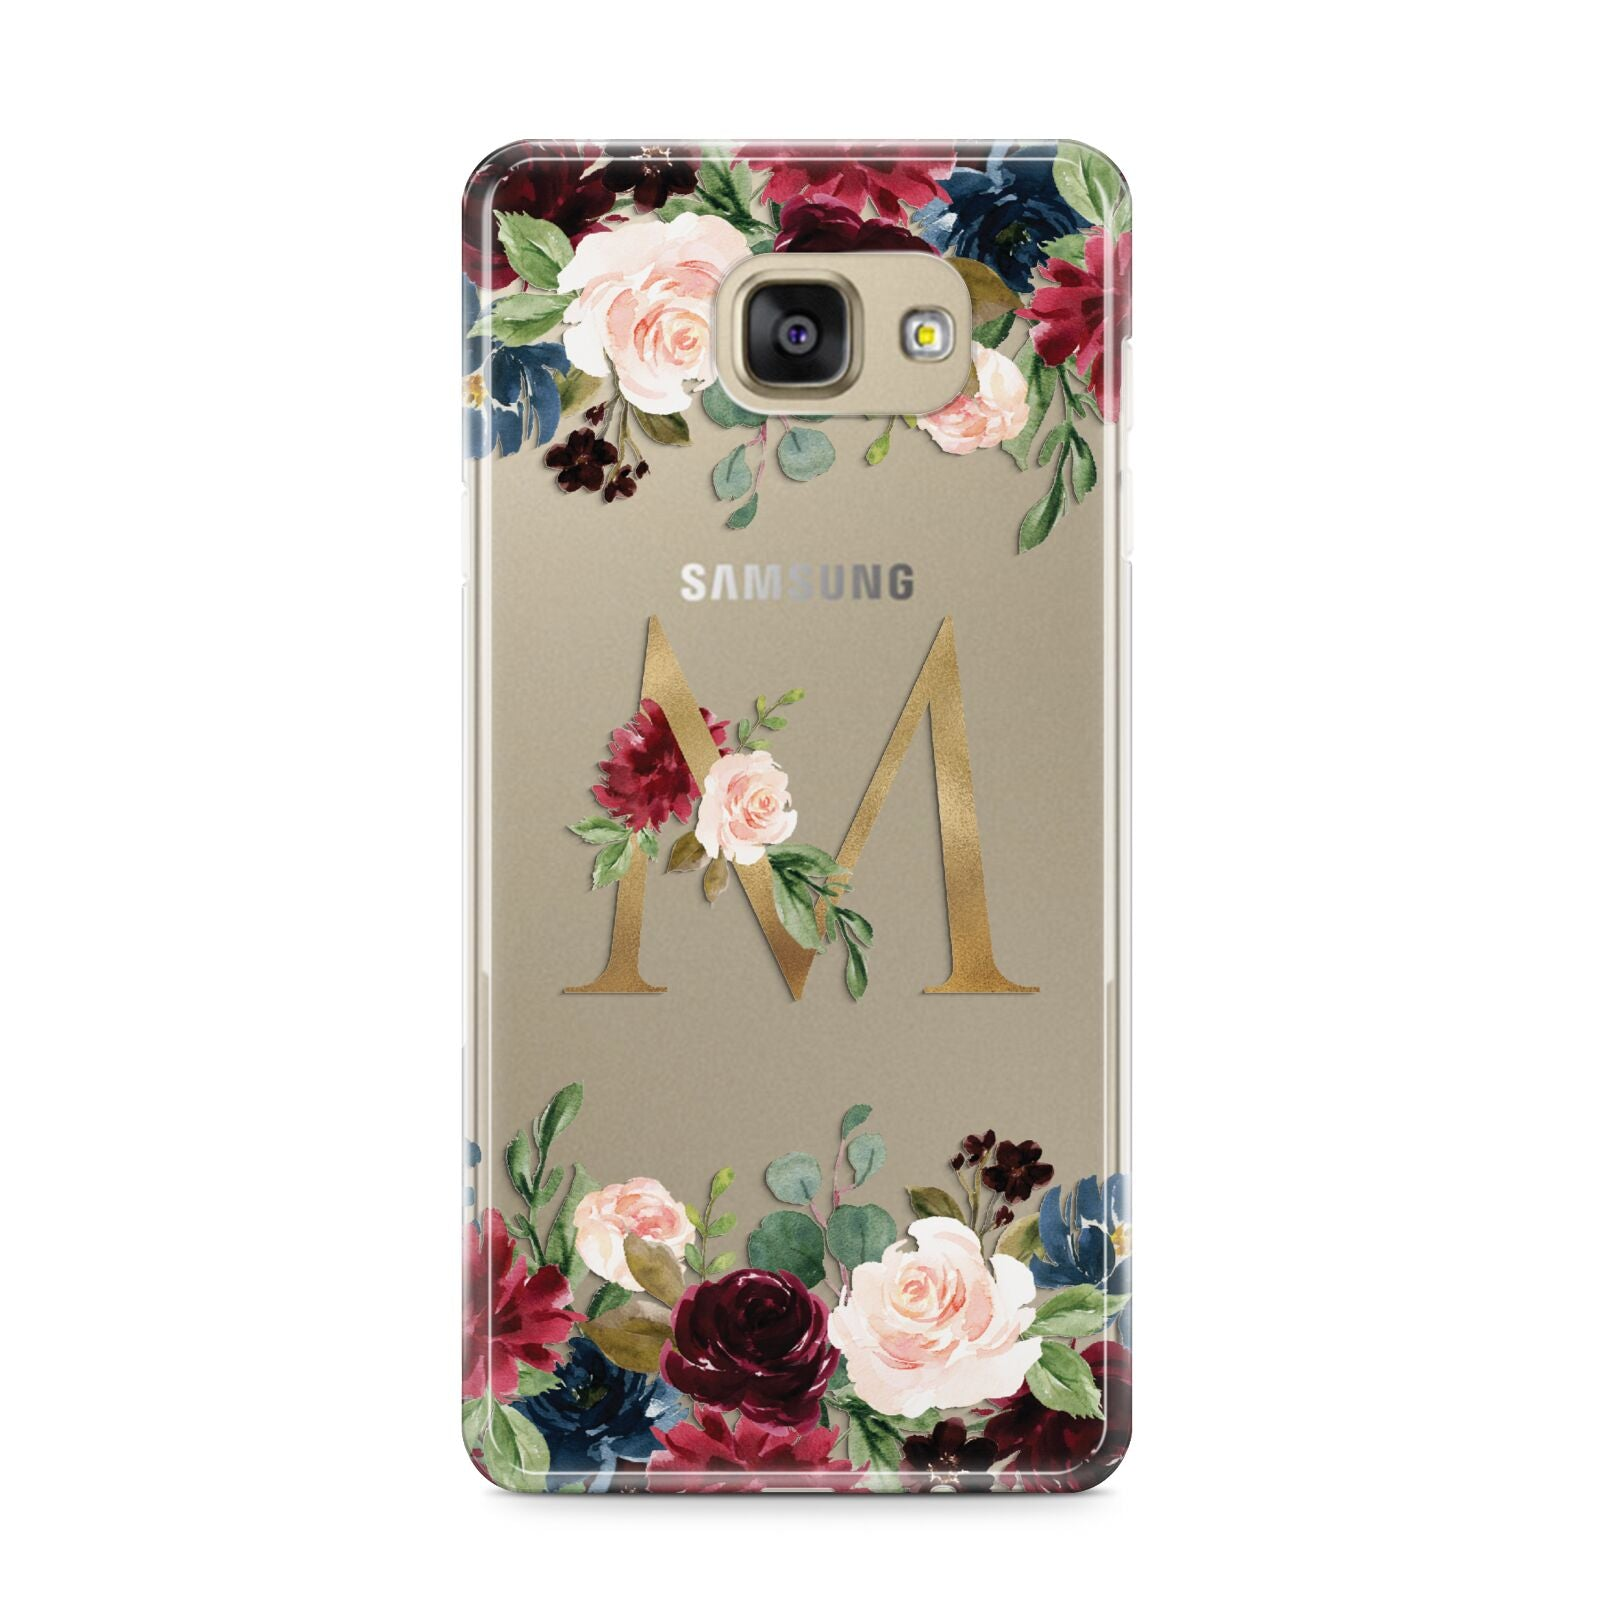 Personalised Clear Monogram Floral Samsung Galaxy A9 2016 Case on gold phone